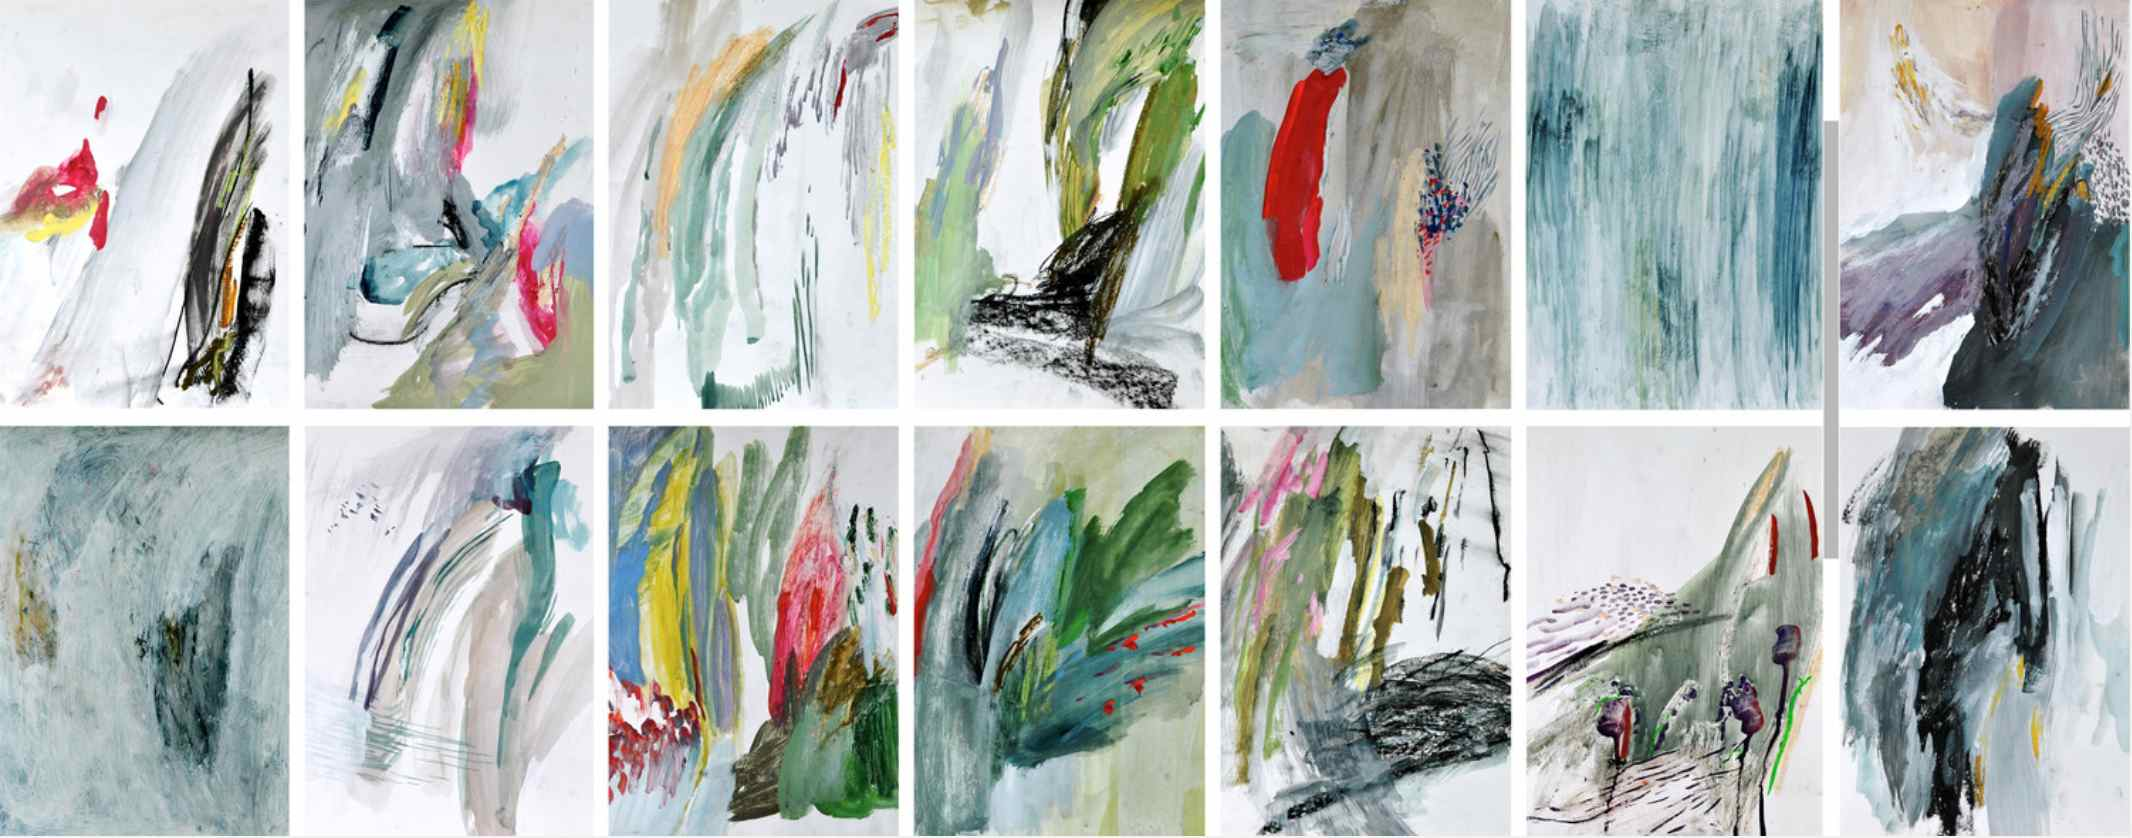 Memories (blue) , 2012 gouache, acrylic, oil paint, oil pastel on paper, series of 14 35 x 45 cm each